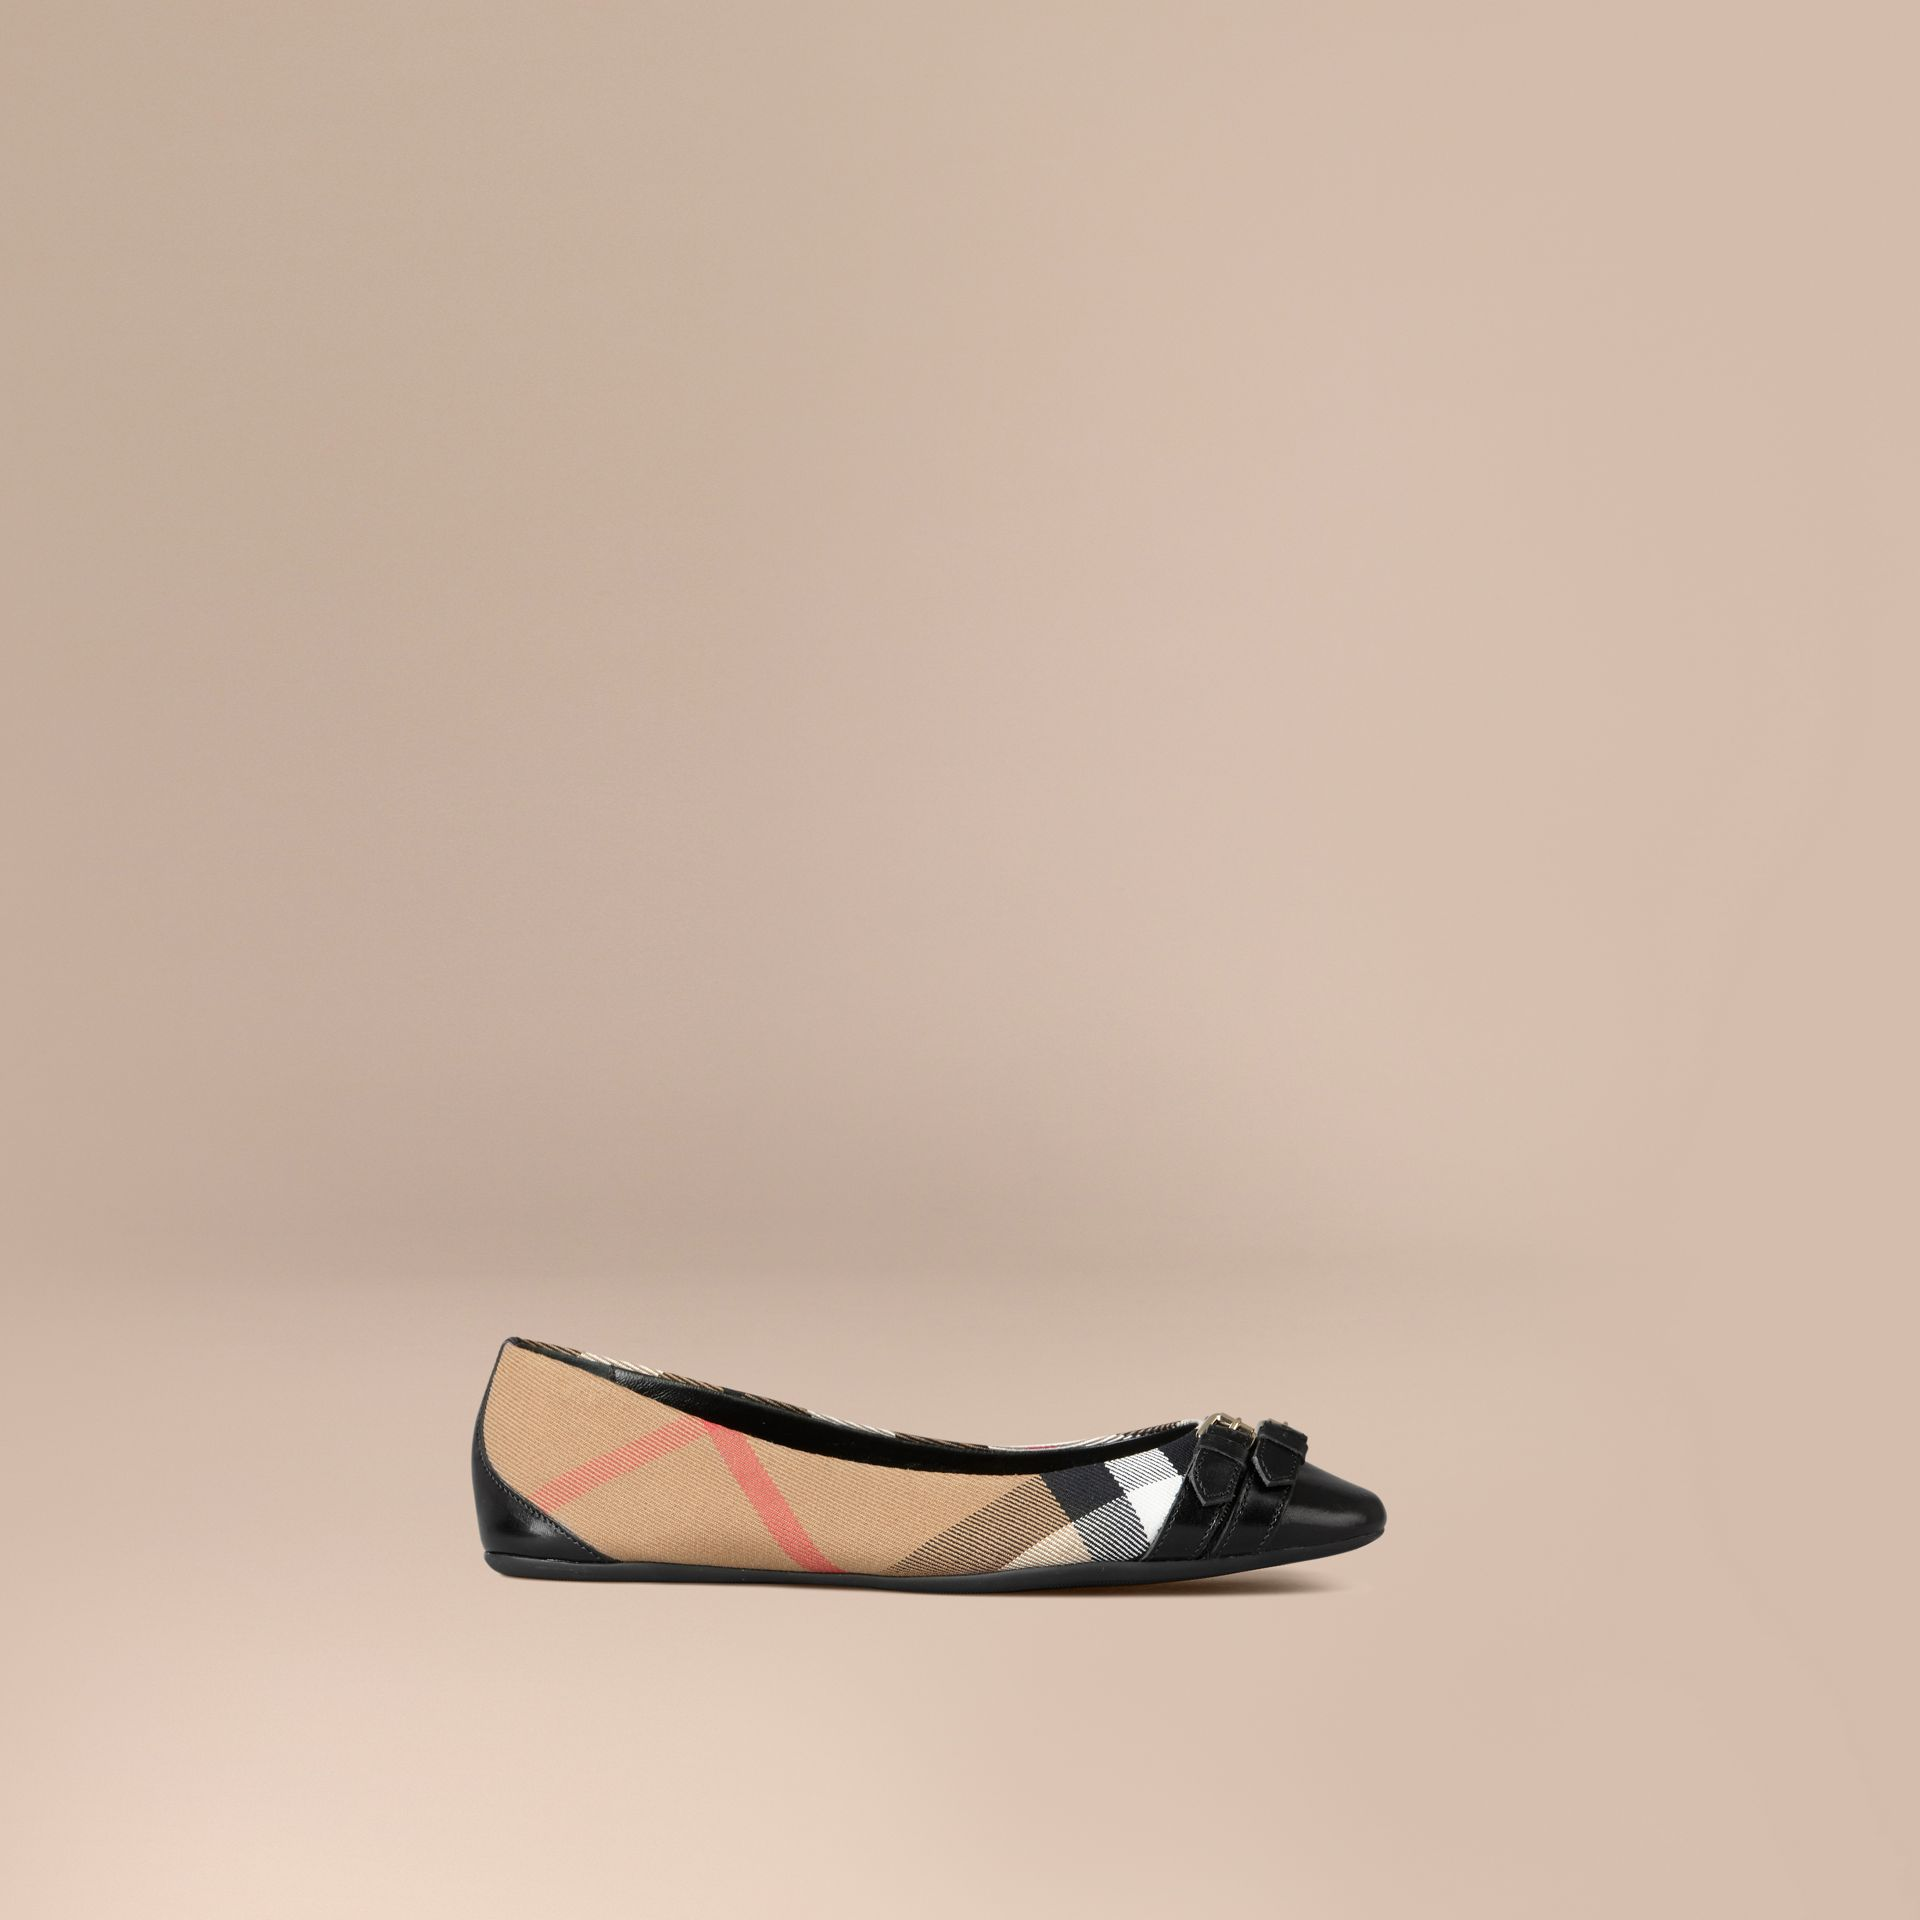 Bridle House Check Ballerinas in Black - gallery image 1